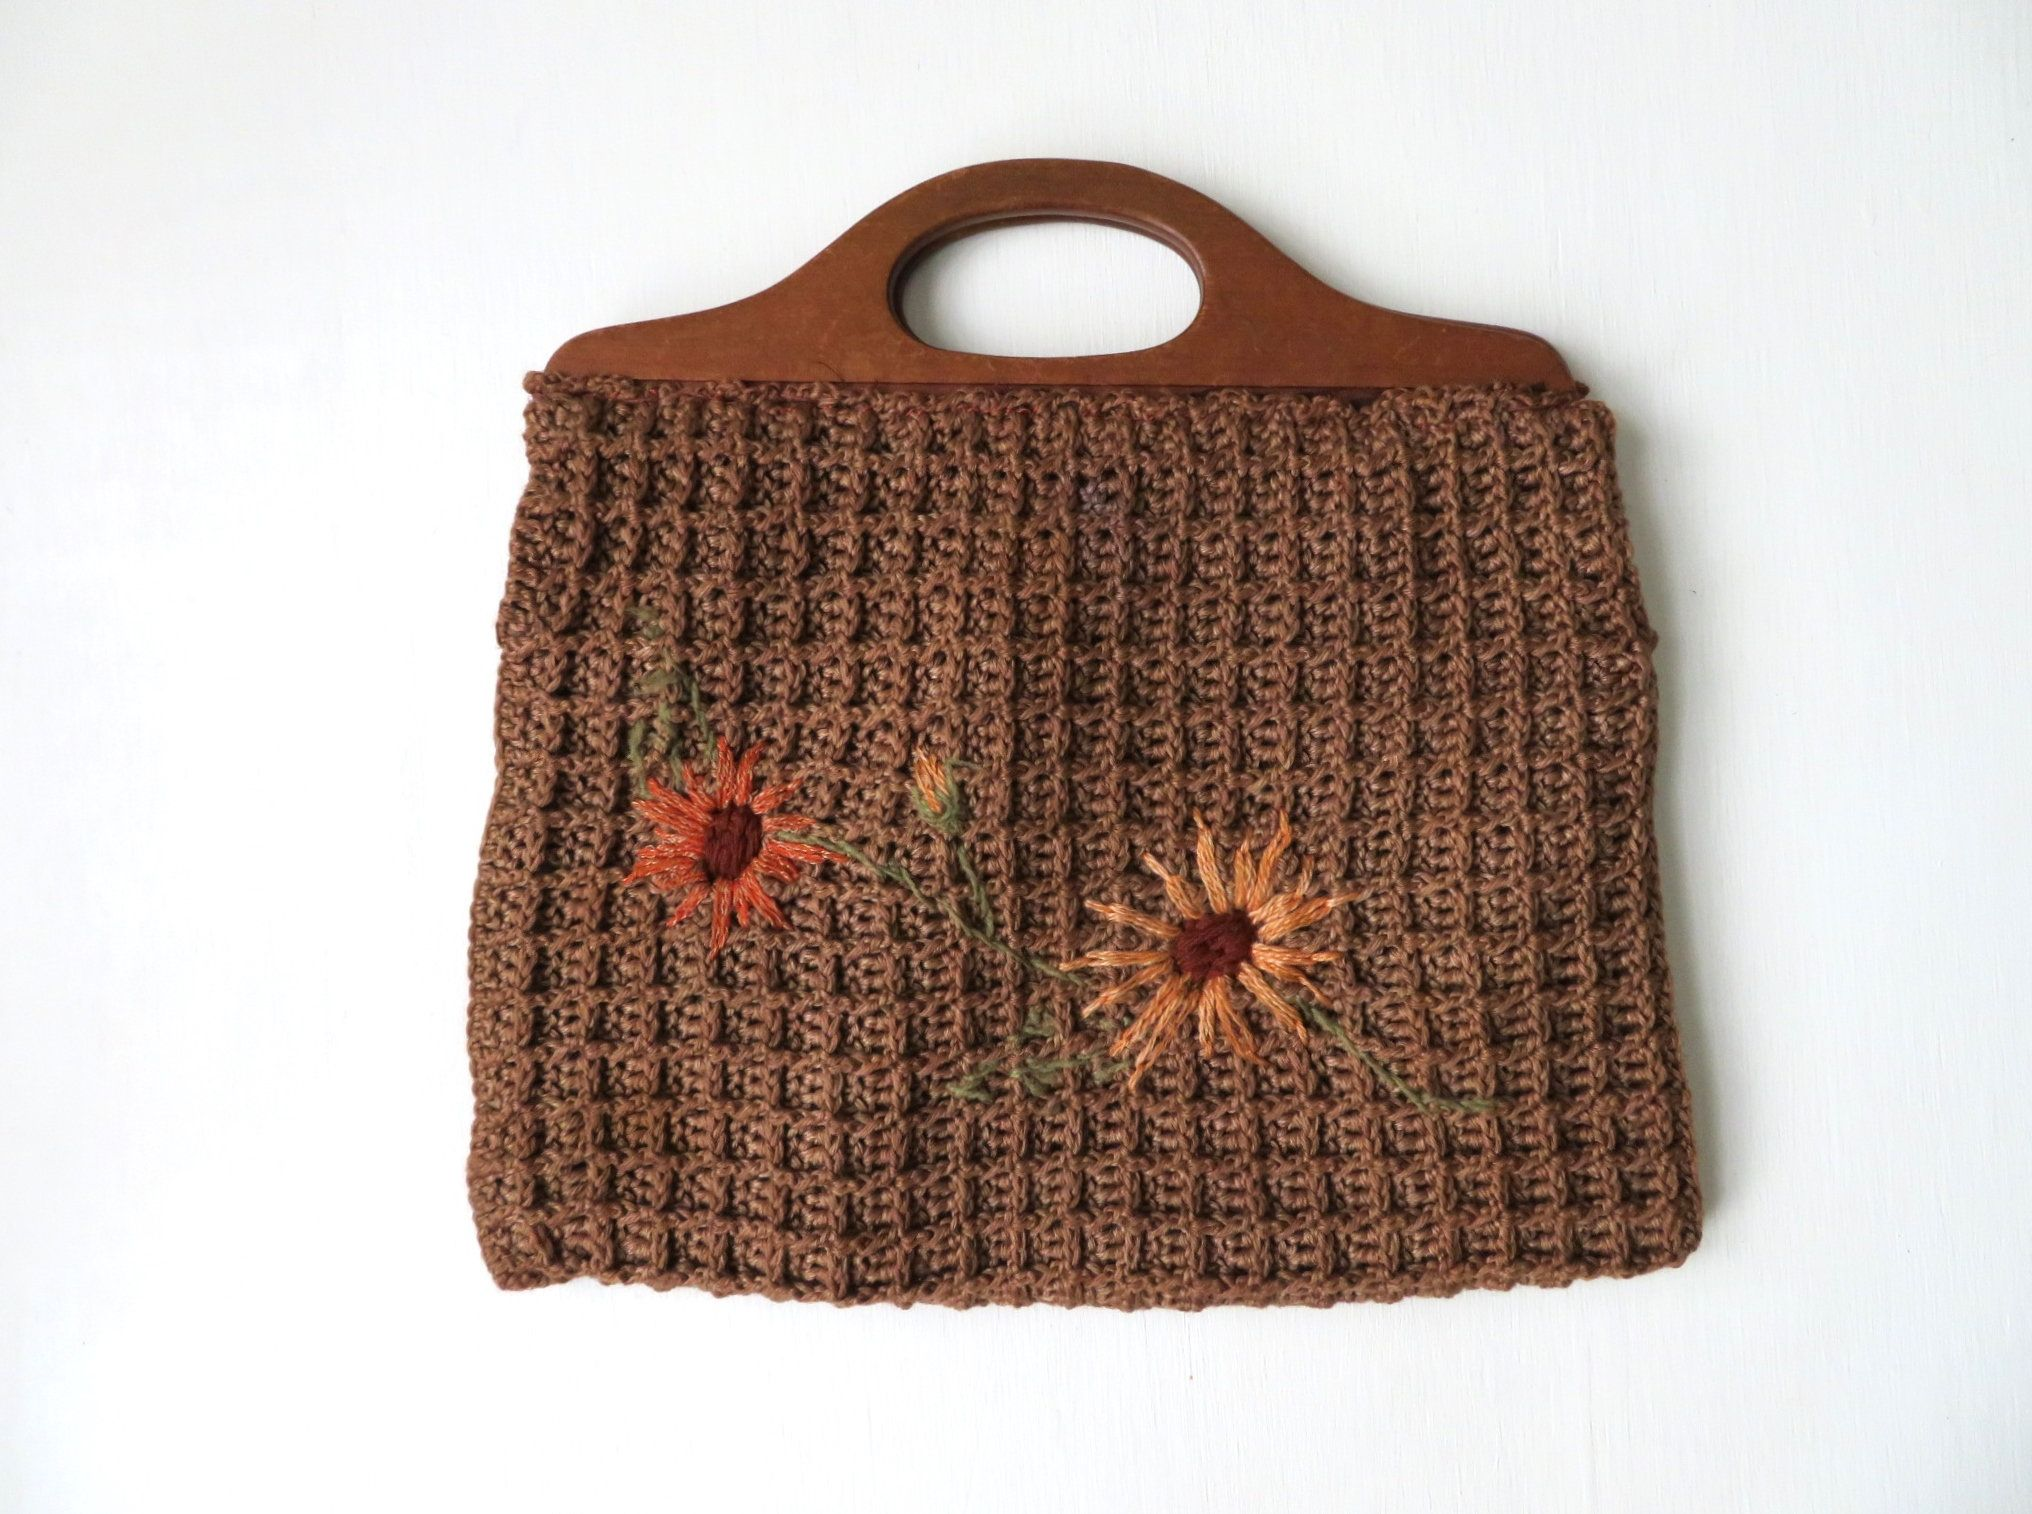 Crochet Bag With Wood Handles And Embroidered Flowers Vintage Bags Crochet Tote Bag Crochet Bag